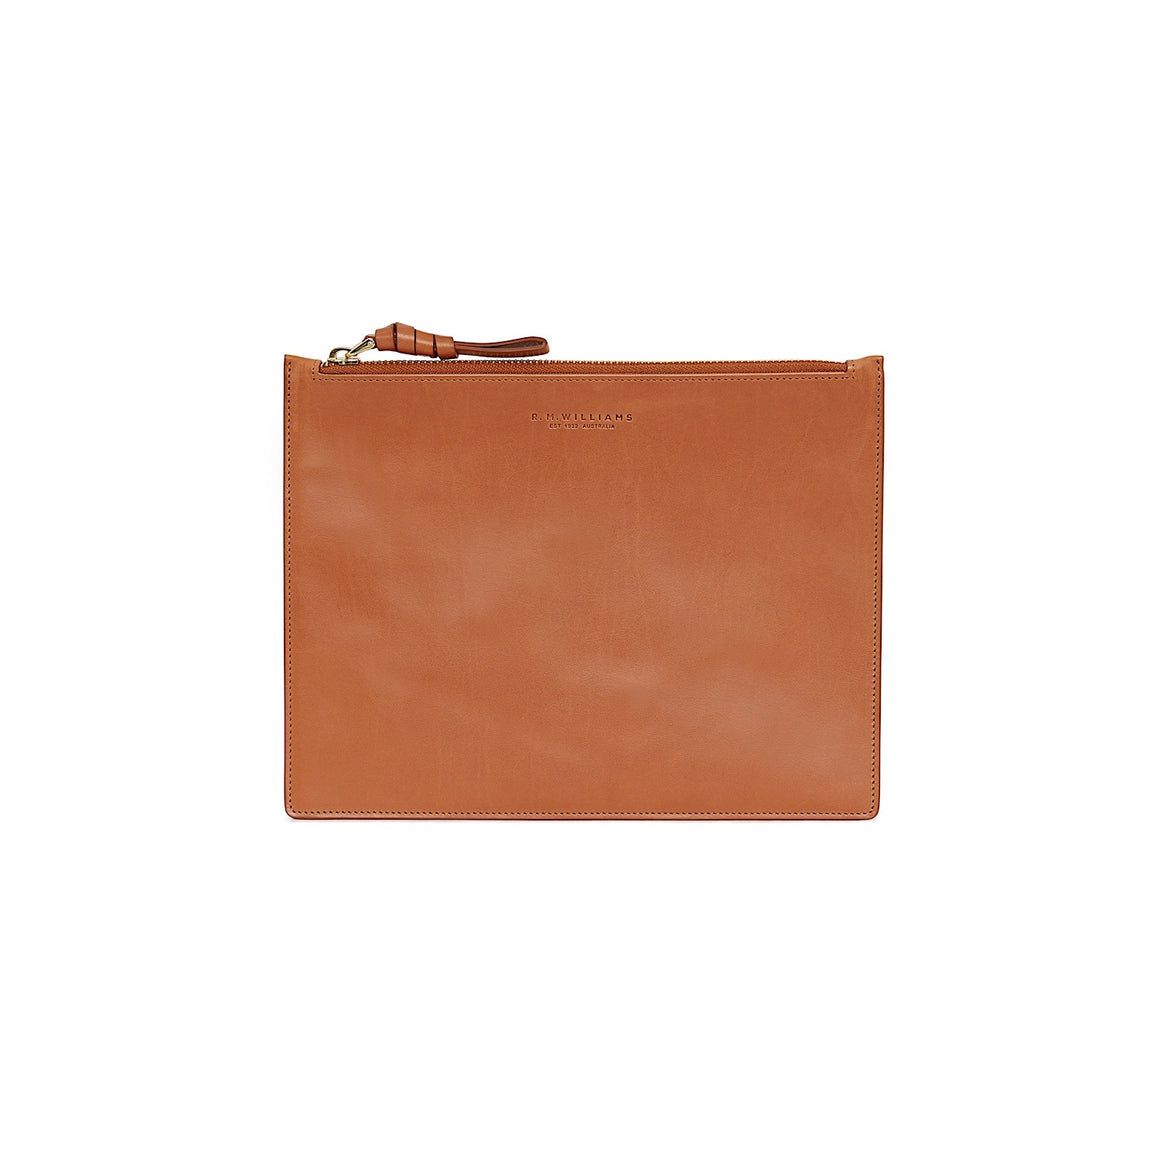 R.M.Williams Womens City Clutch Tan